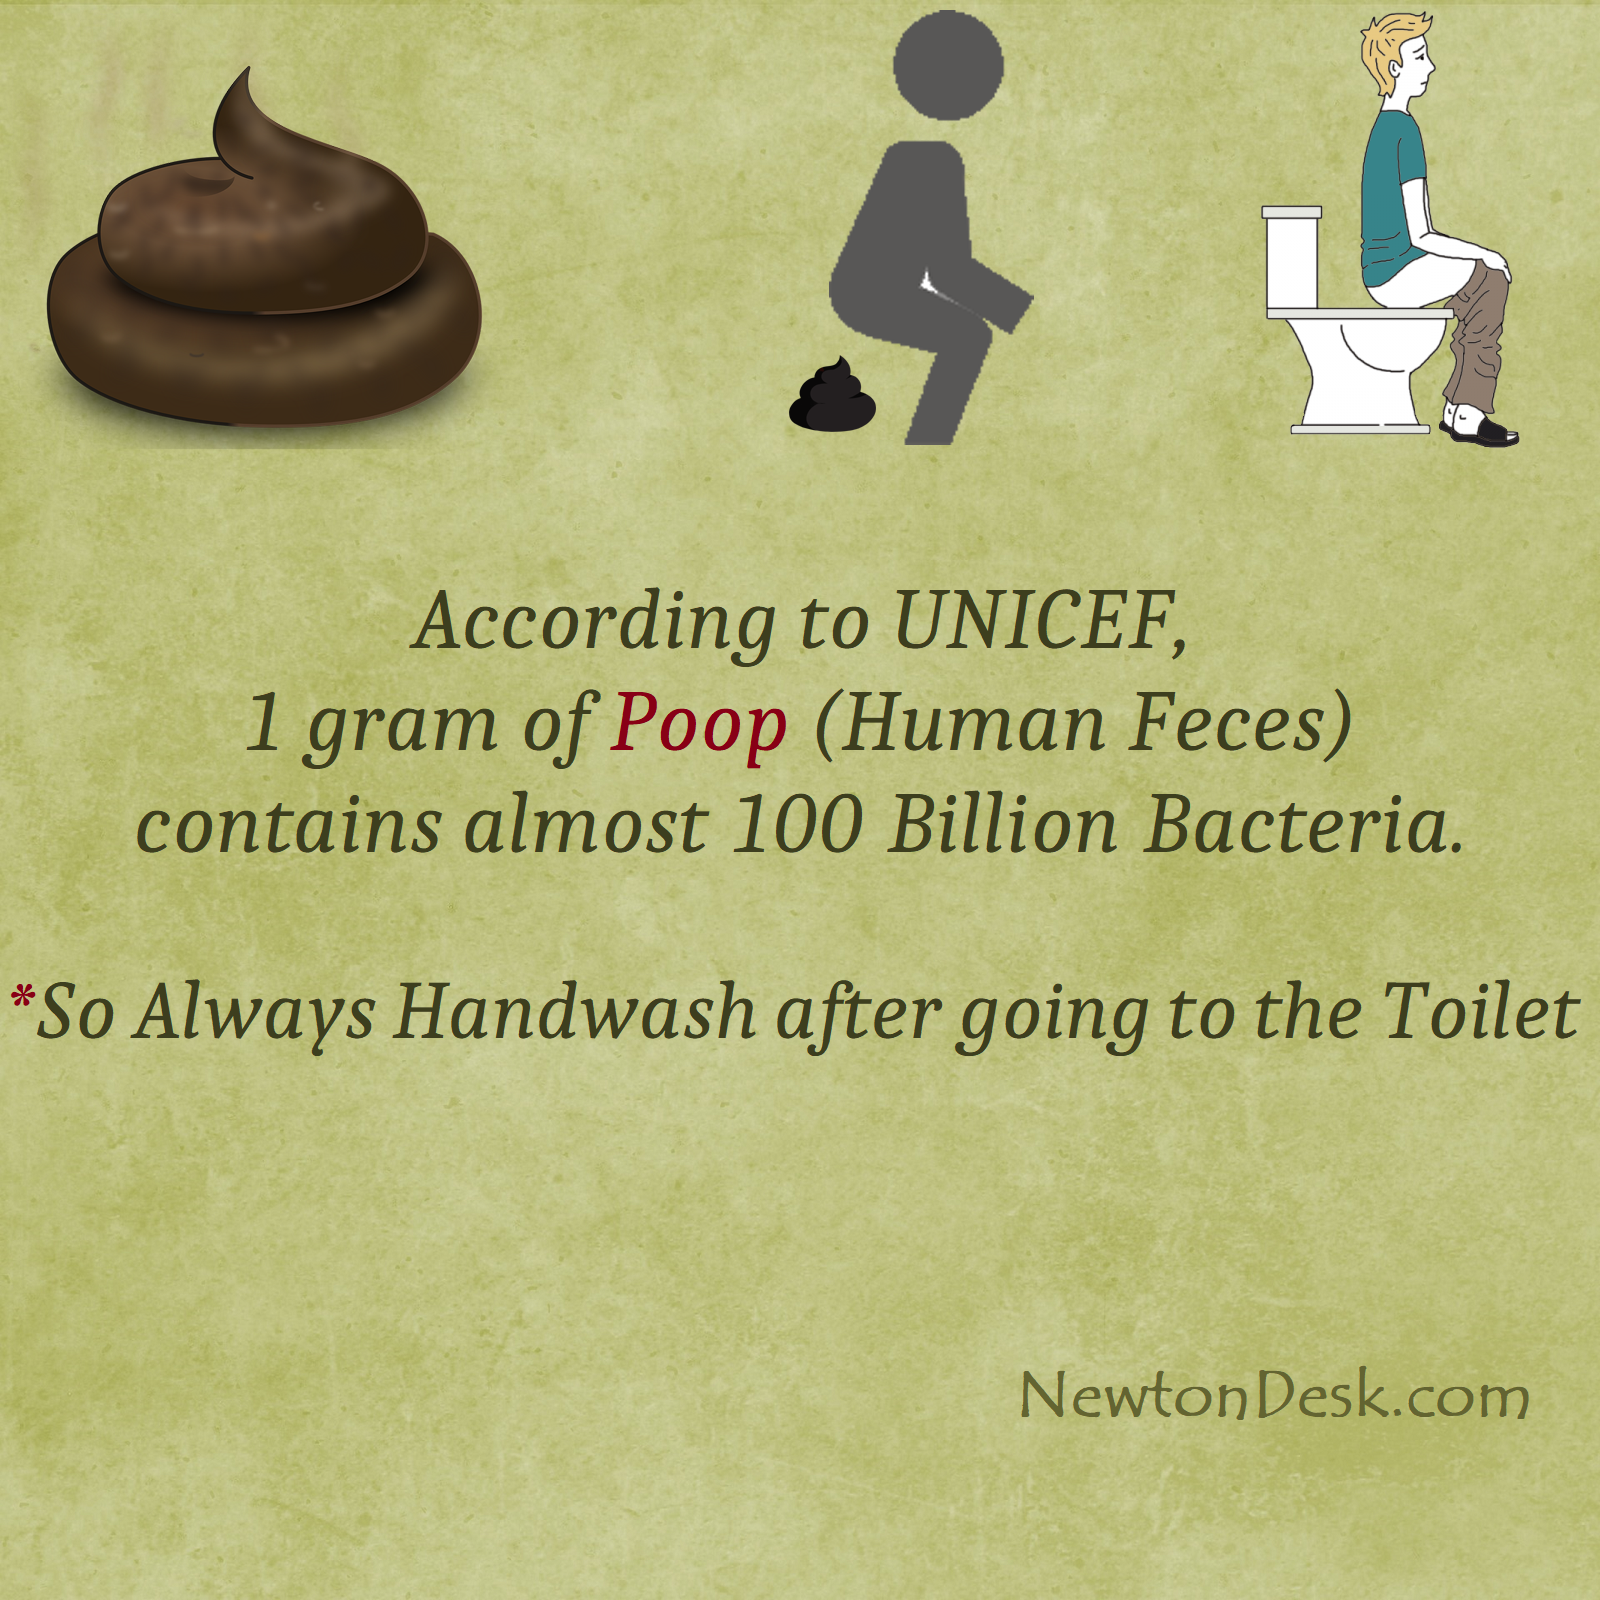 One Gram of Poop Contains Almost 100 Billion Bacteria | UNICEF Facts